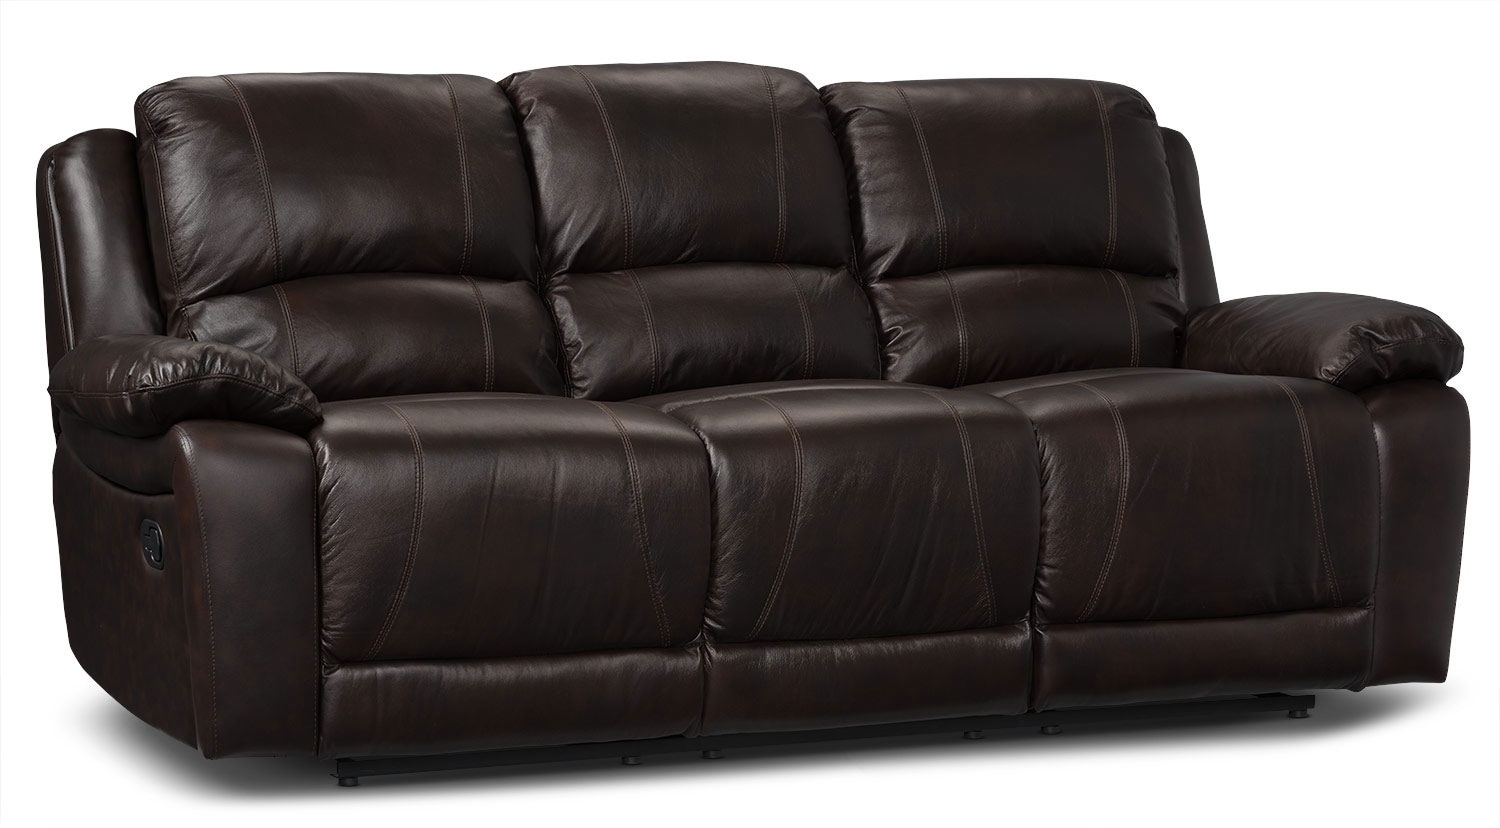 marco genuine leather power reclining sofa chocolate. Black Bedroom Furniture Sets. Home Design Ideas